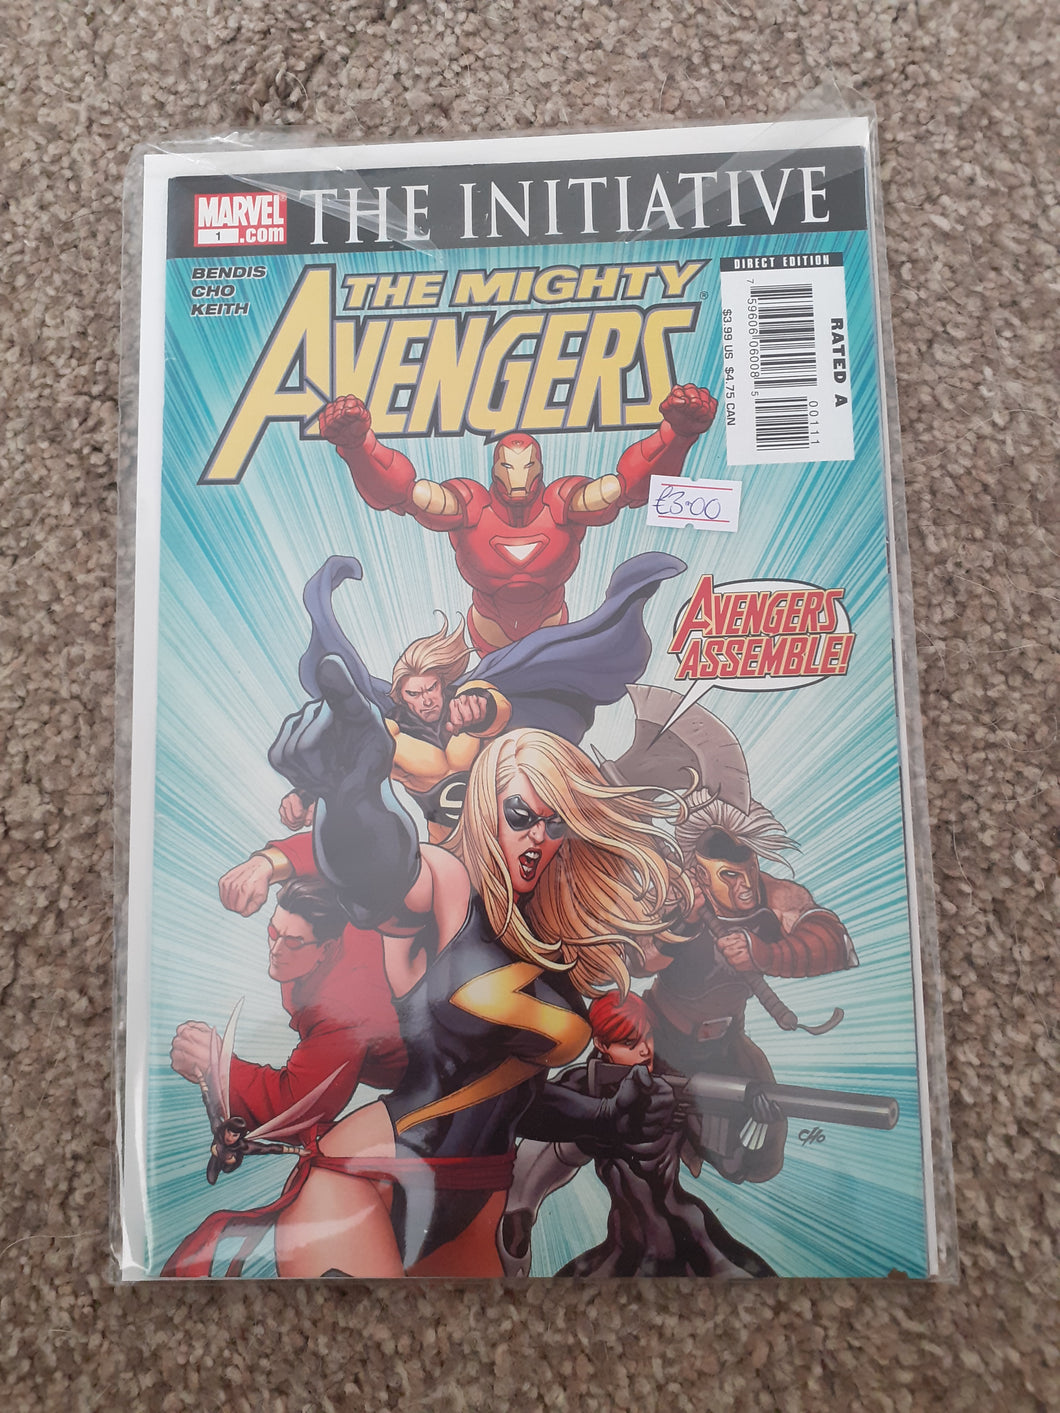 The Mighty Avengers: The Initiative #1